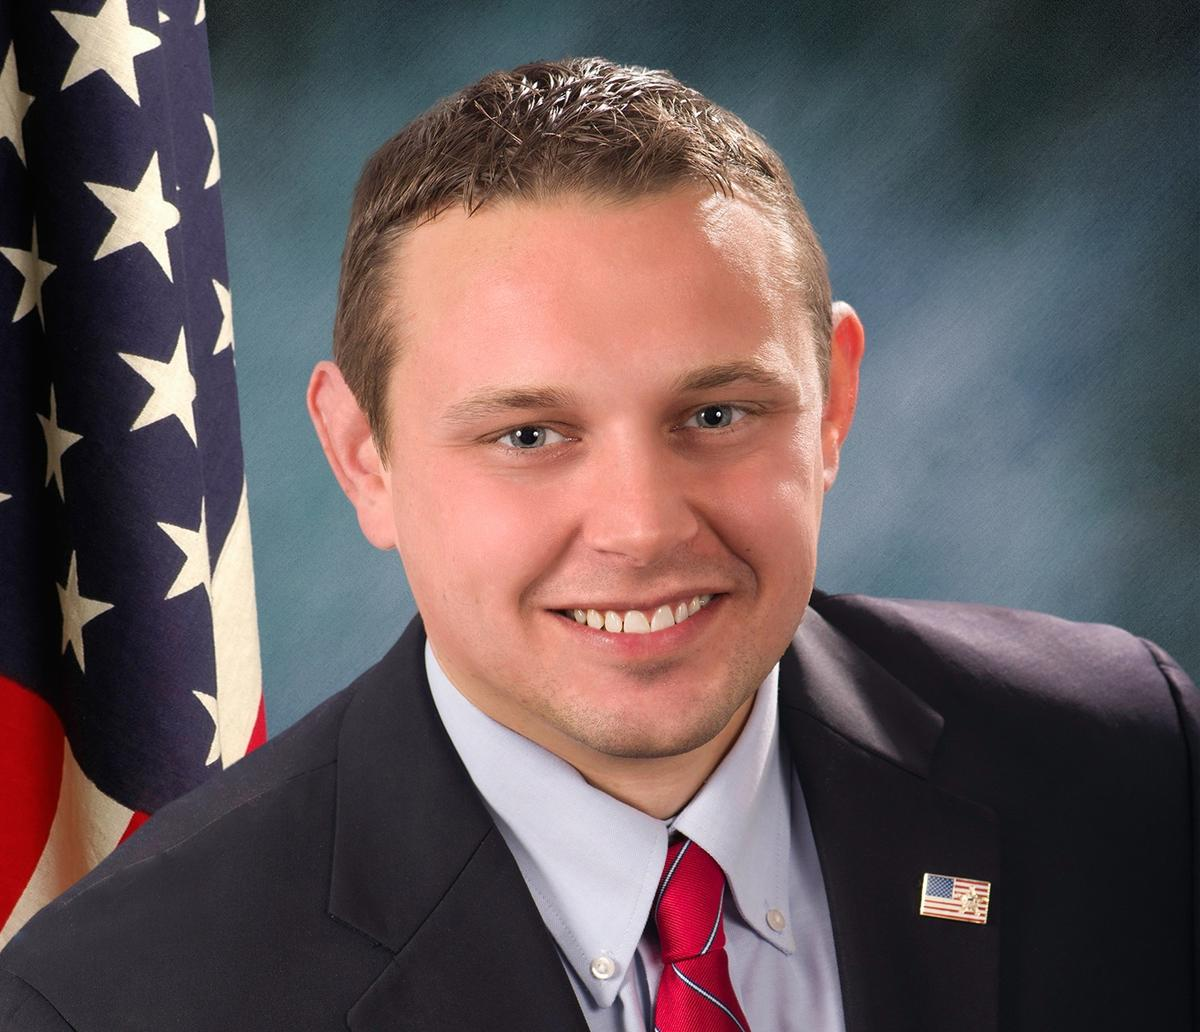 State Sen. Neil Anderson Crosses Party Lines To Vote For Legal Marijuana